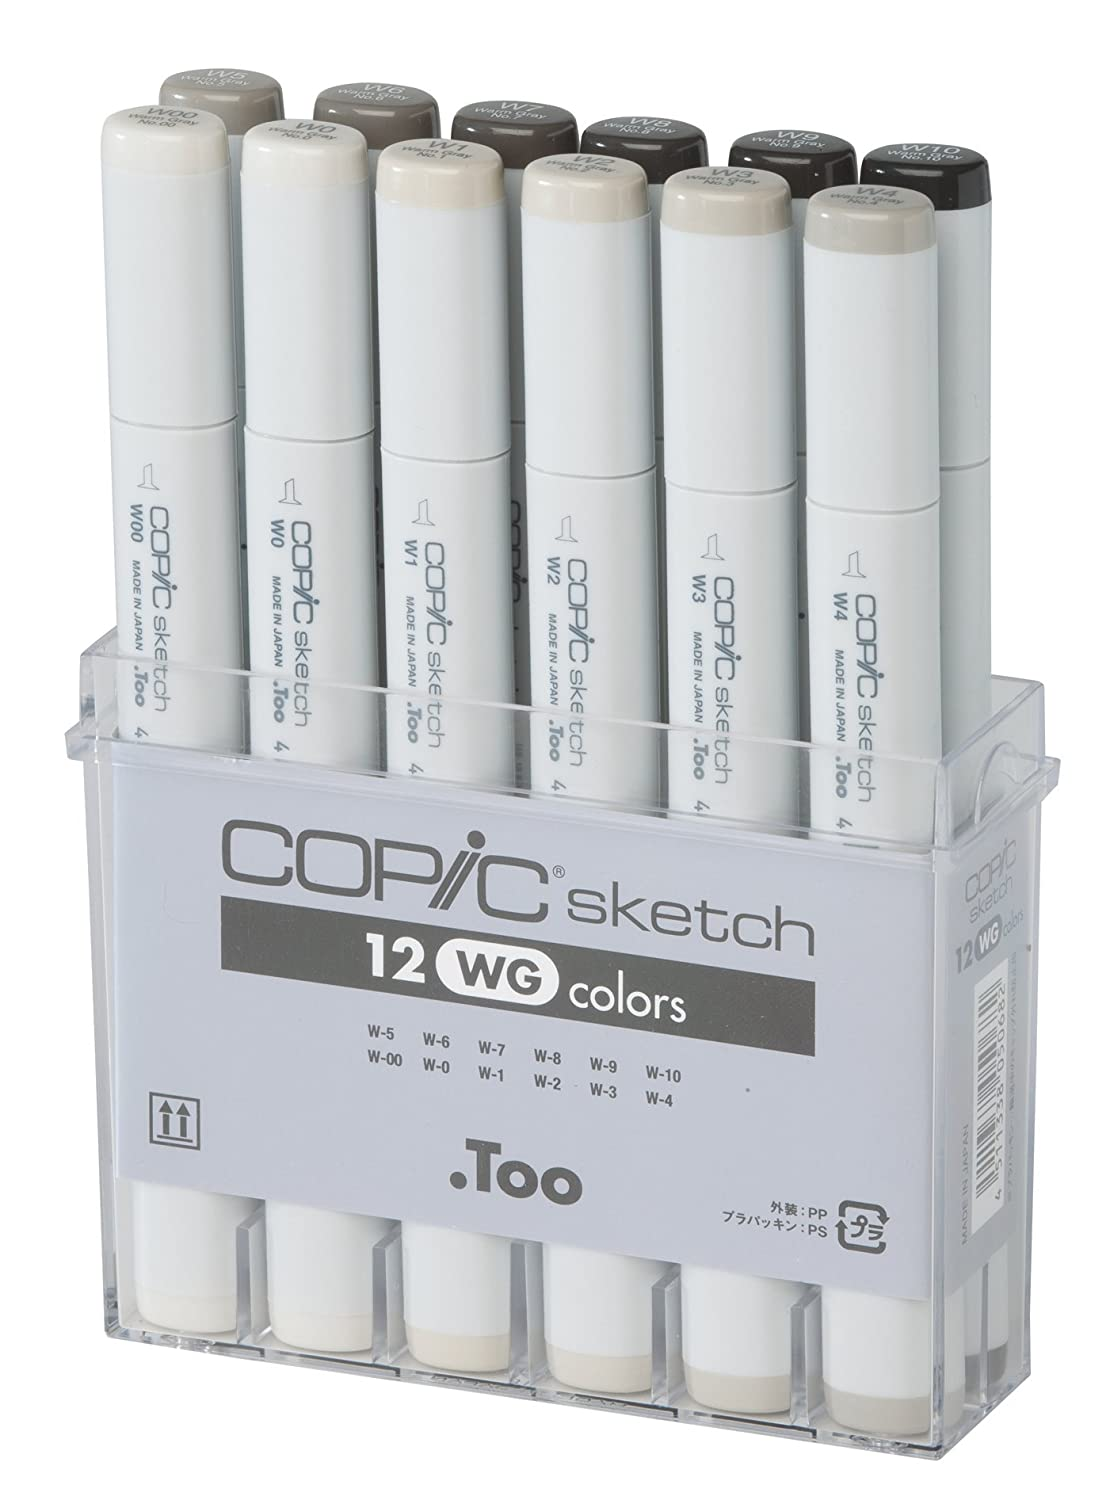 Copic Markers 12 Piece Sketch Set, Warm Gray SWG12